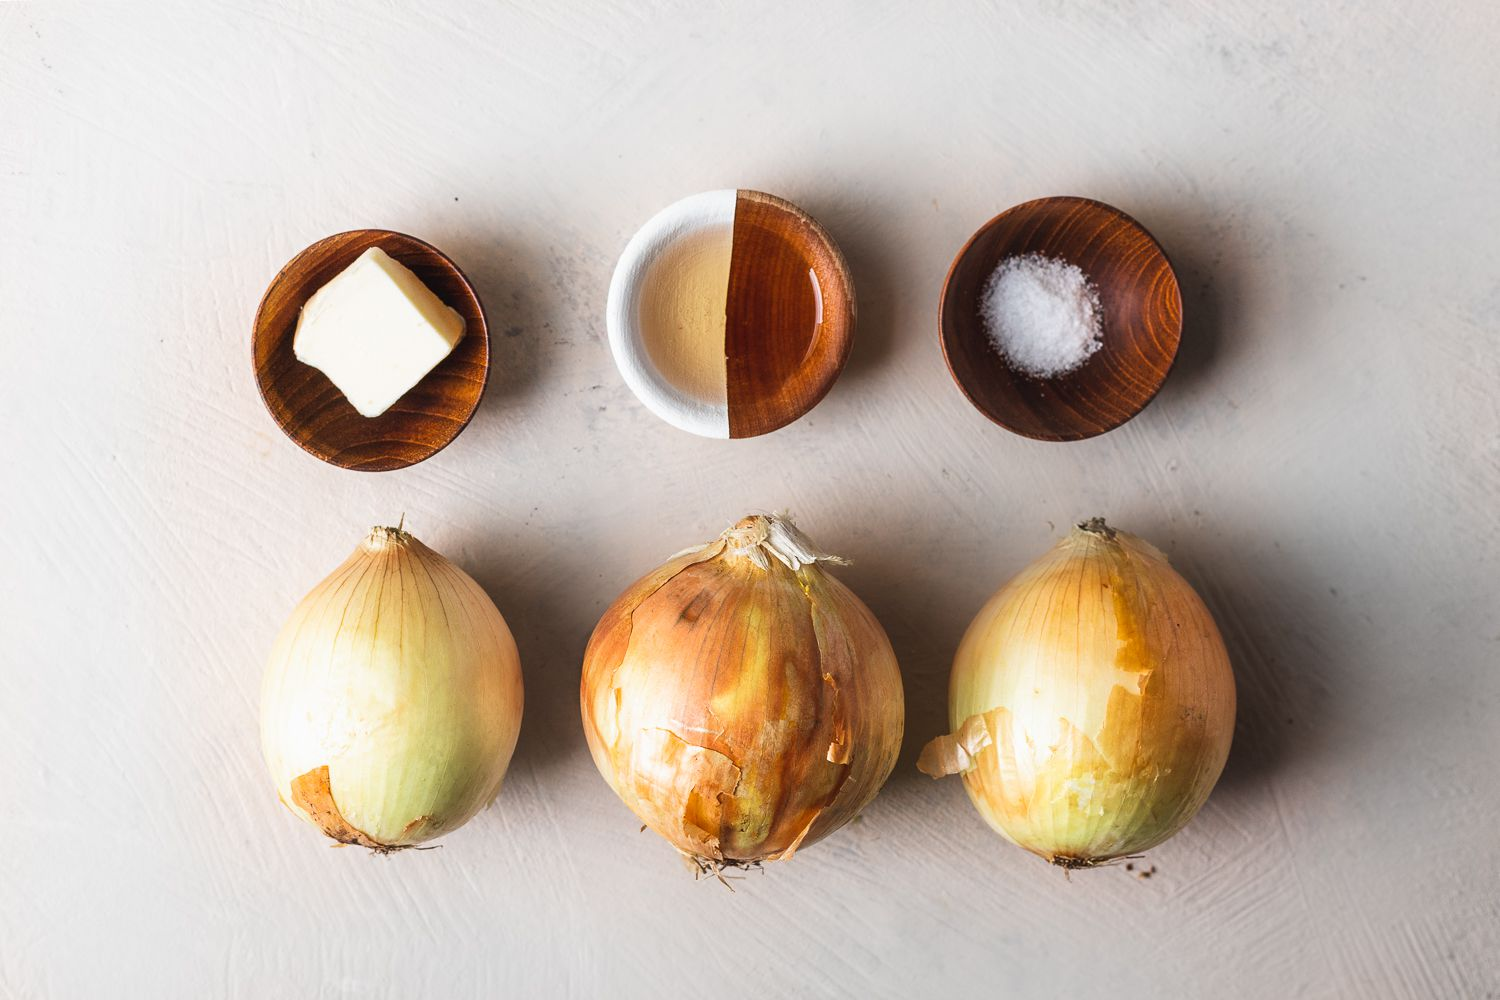 Ingredients for browned onions